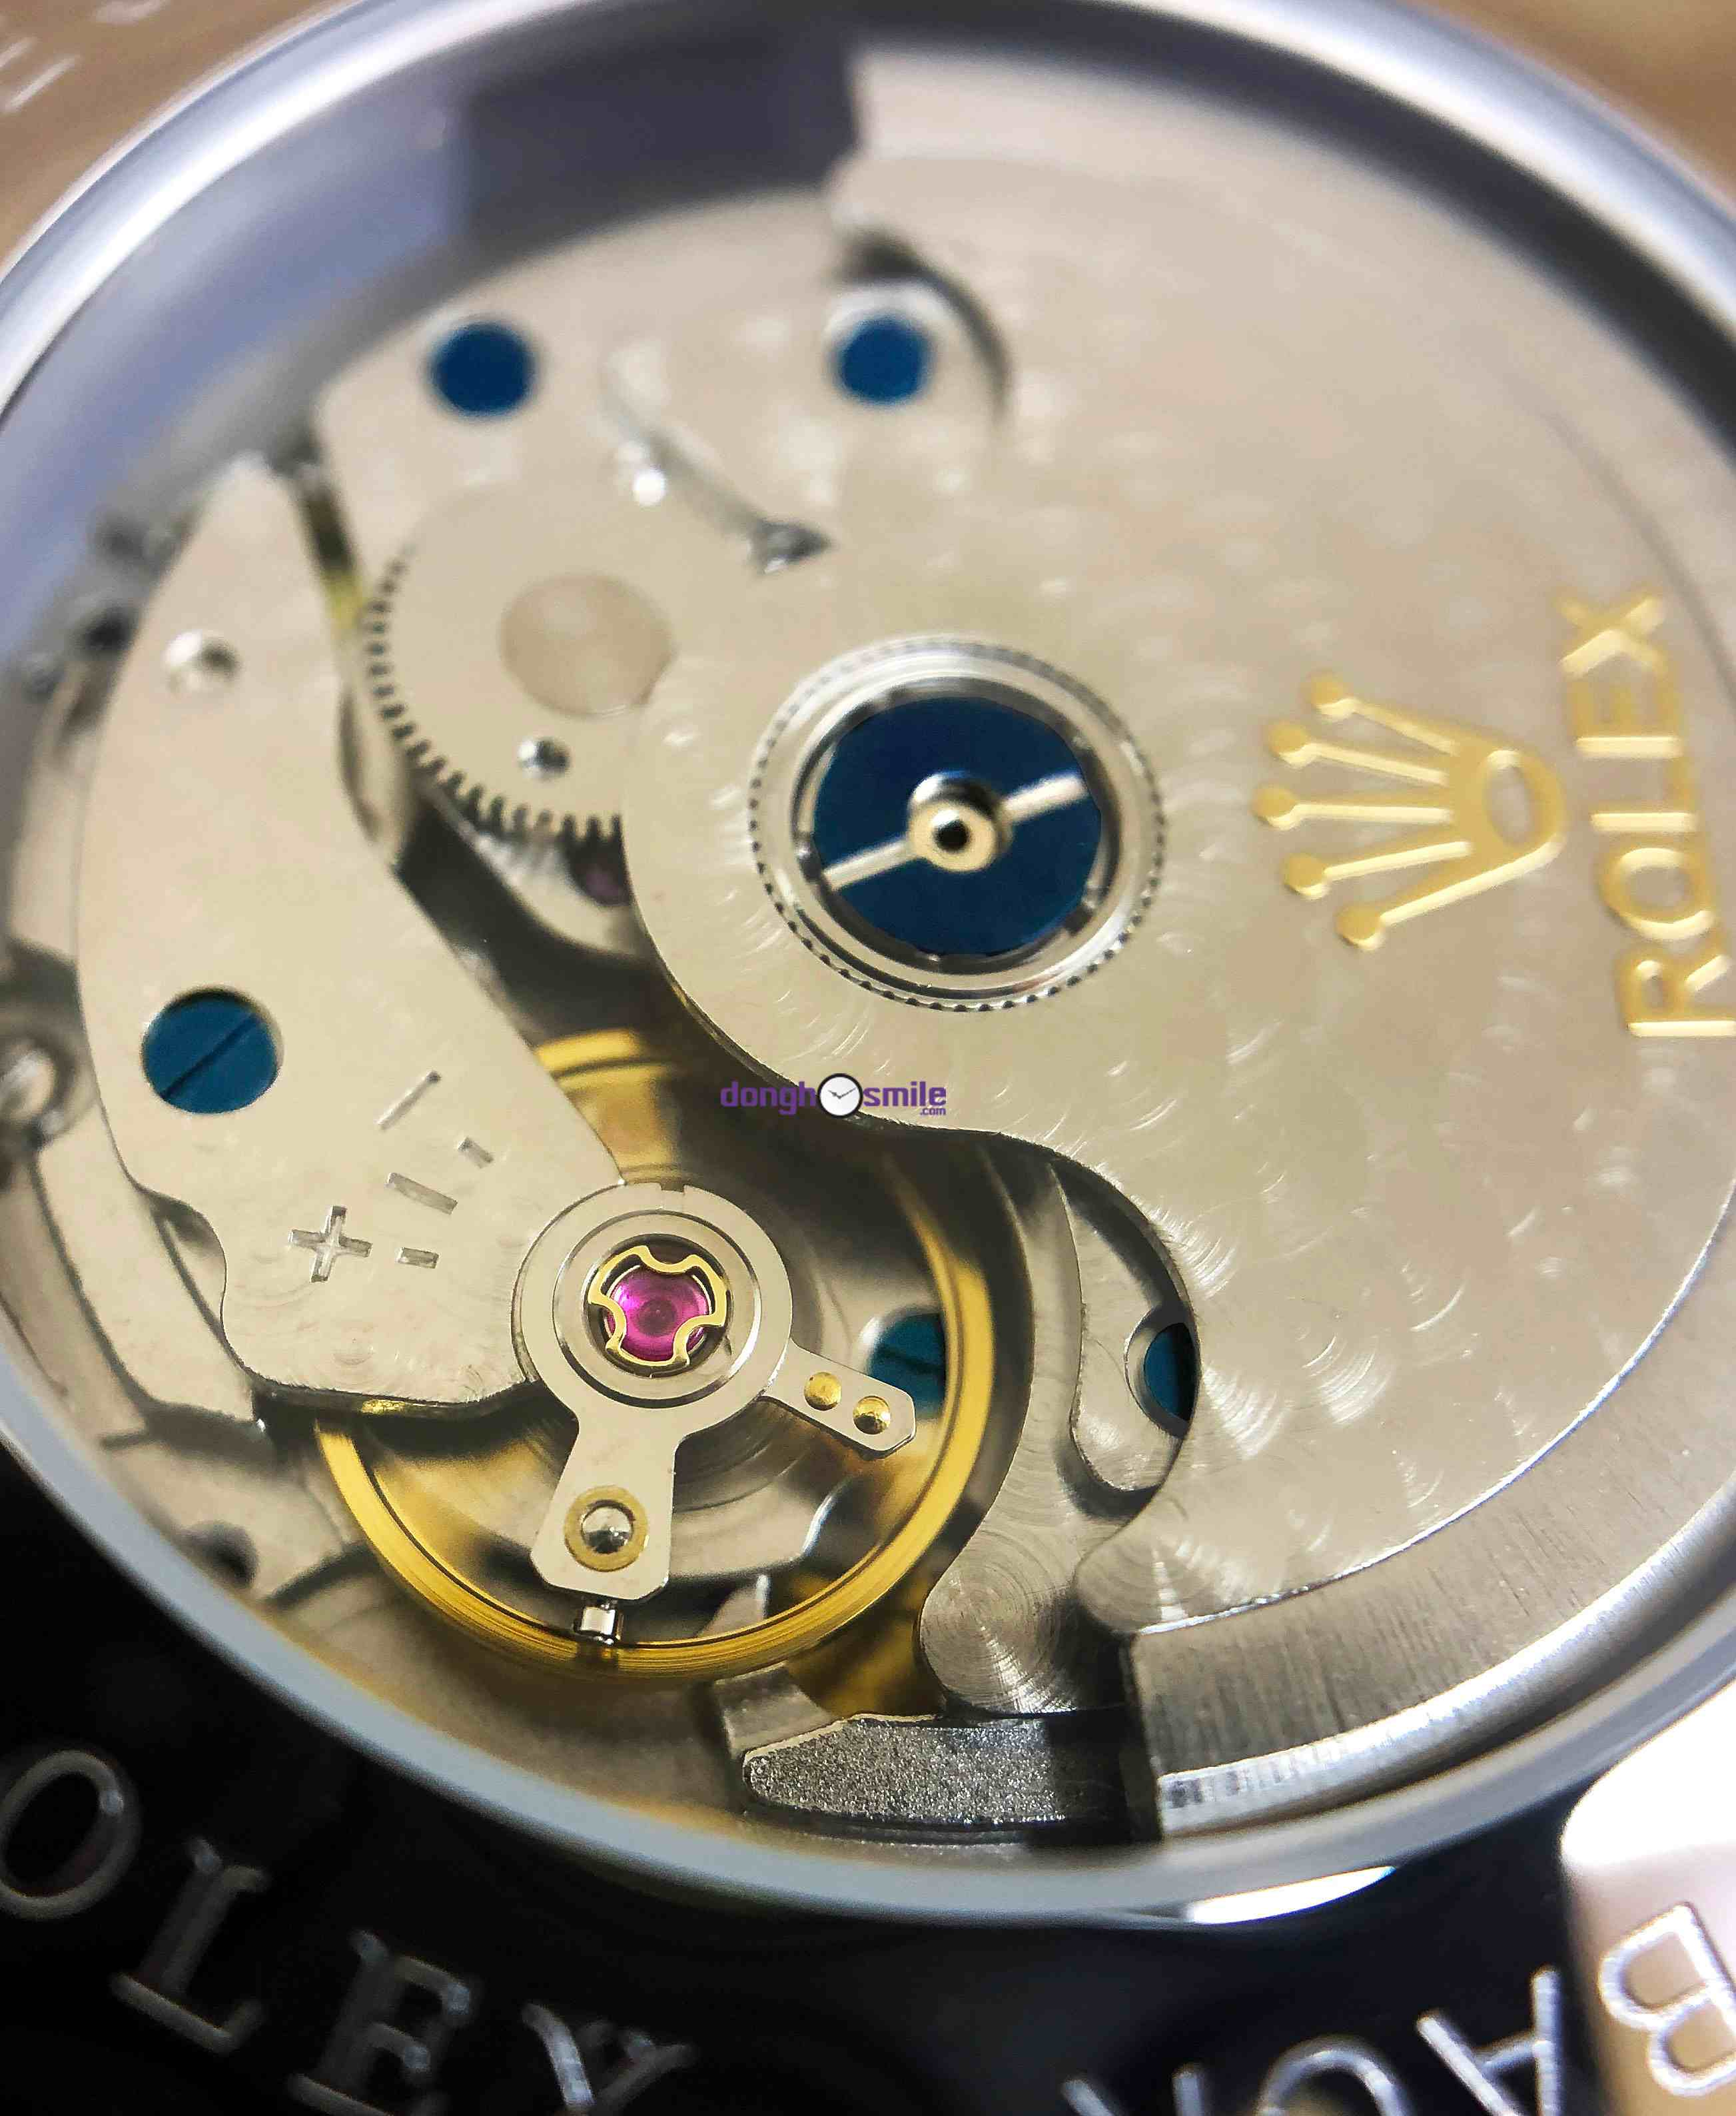 dong-ho-rolex-cellini-nam-may-tu-dong-a-rl05-06